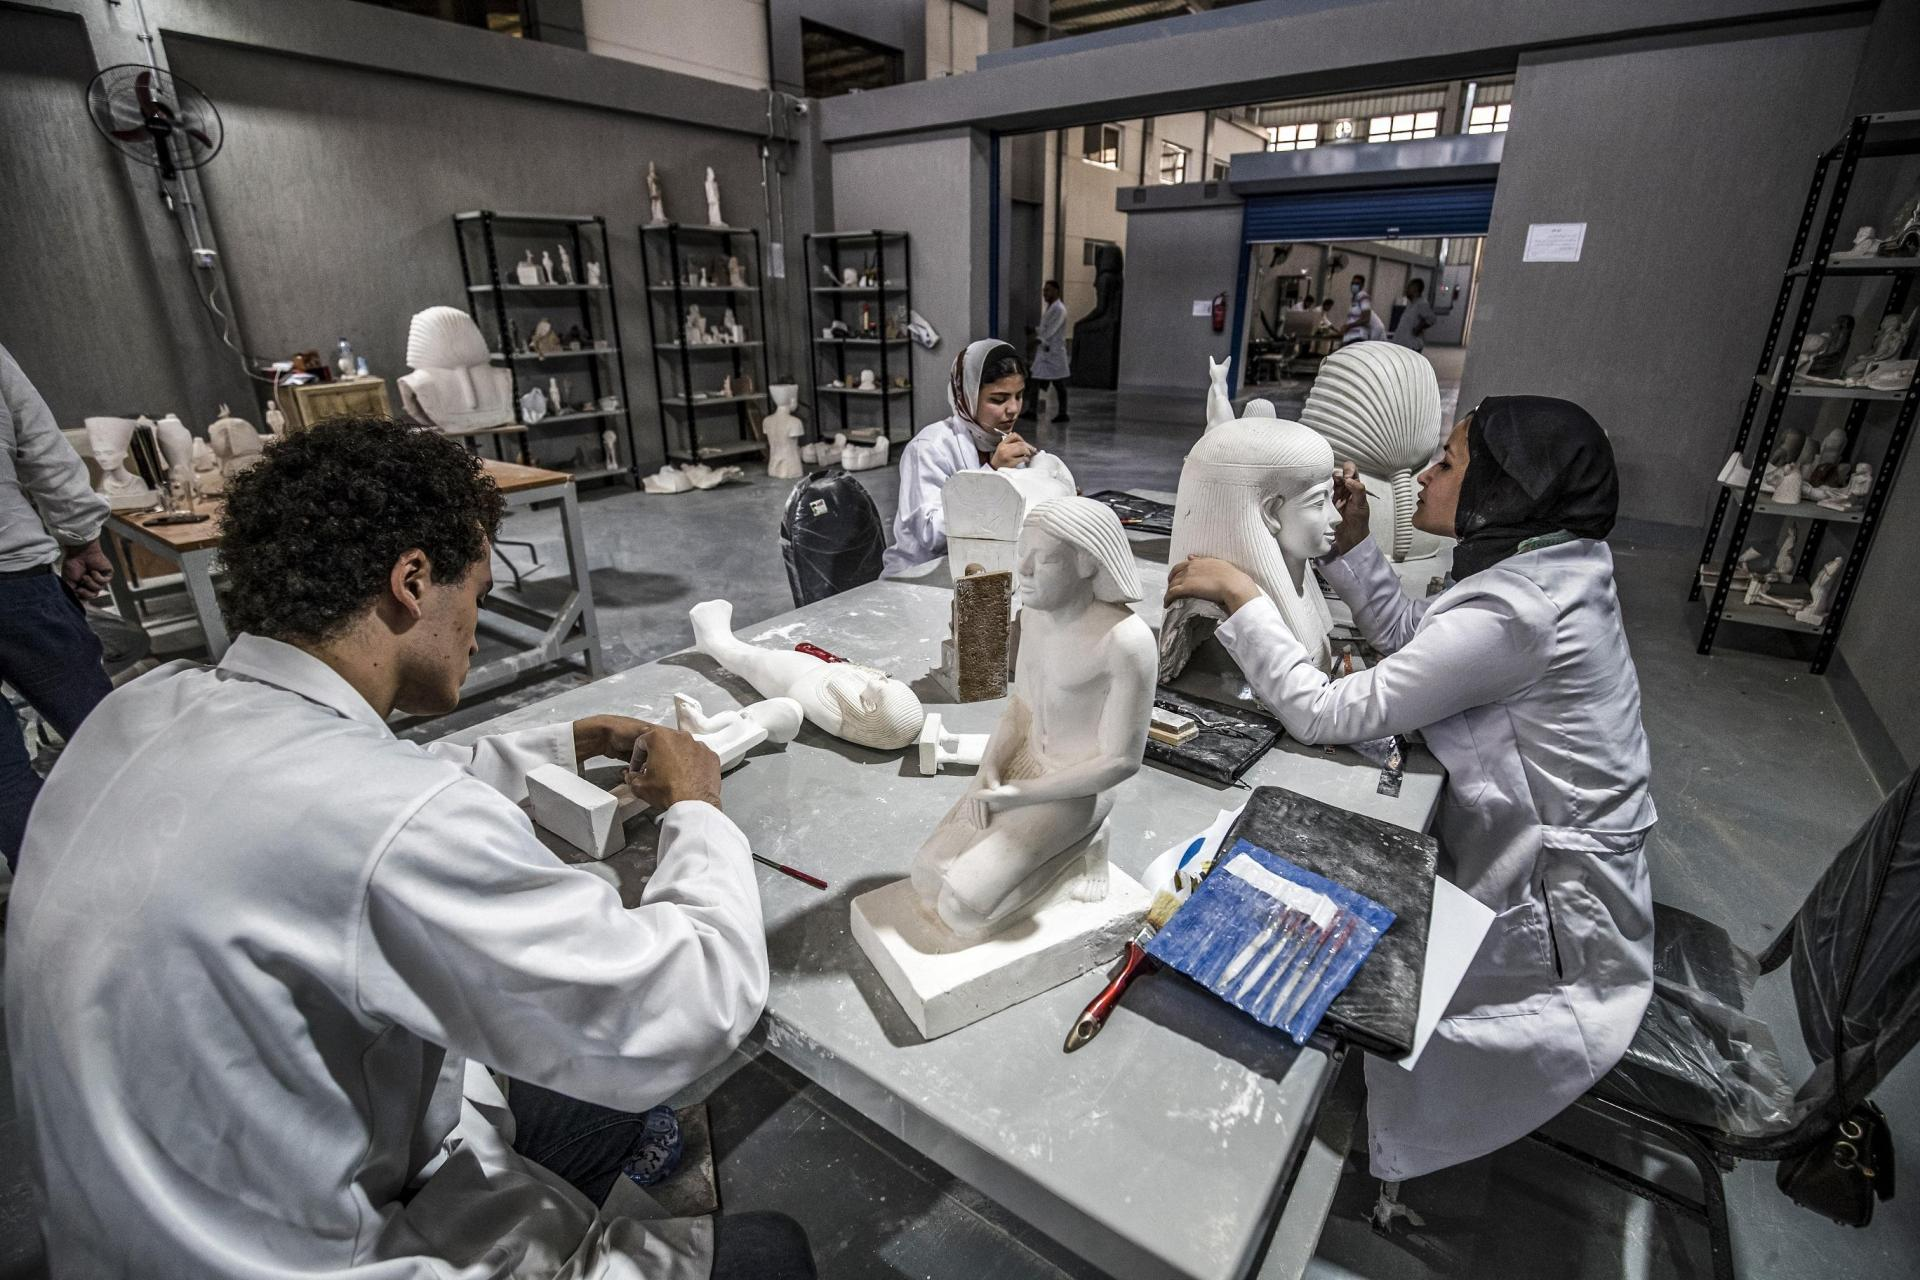 Technicians paint replicas of an Ancient Egyptian statues being fabricated at the Egyptian government's Konouz (Treasures) factory reproducing replicas of Ancient Egyptian items, at el-Obour city, east of the capital Cairo on May 17, 2021.